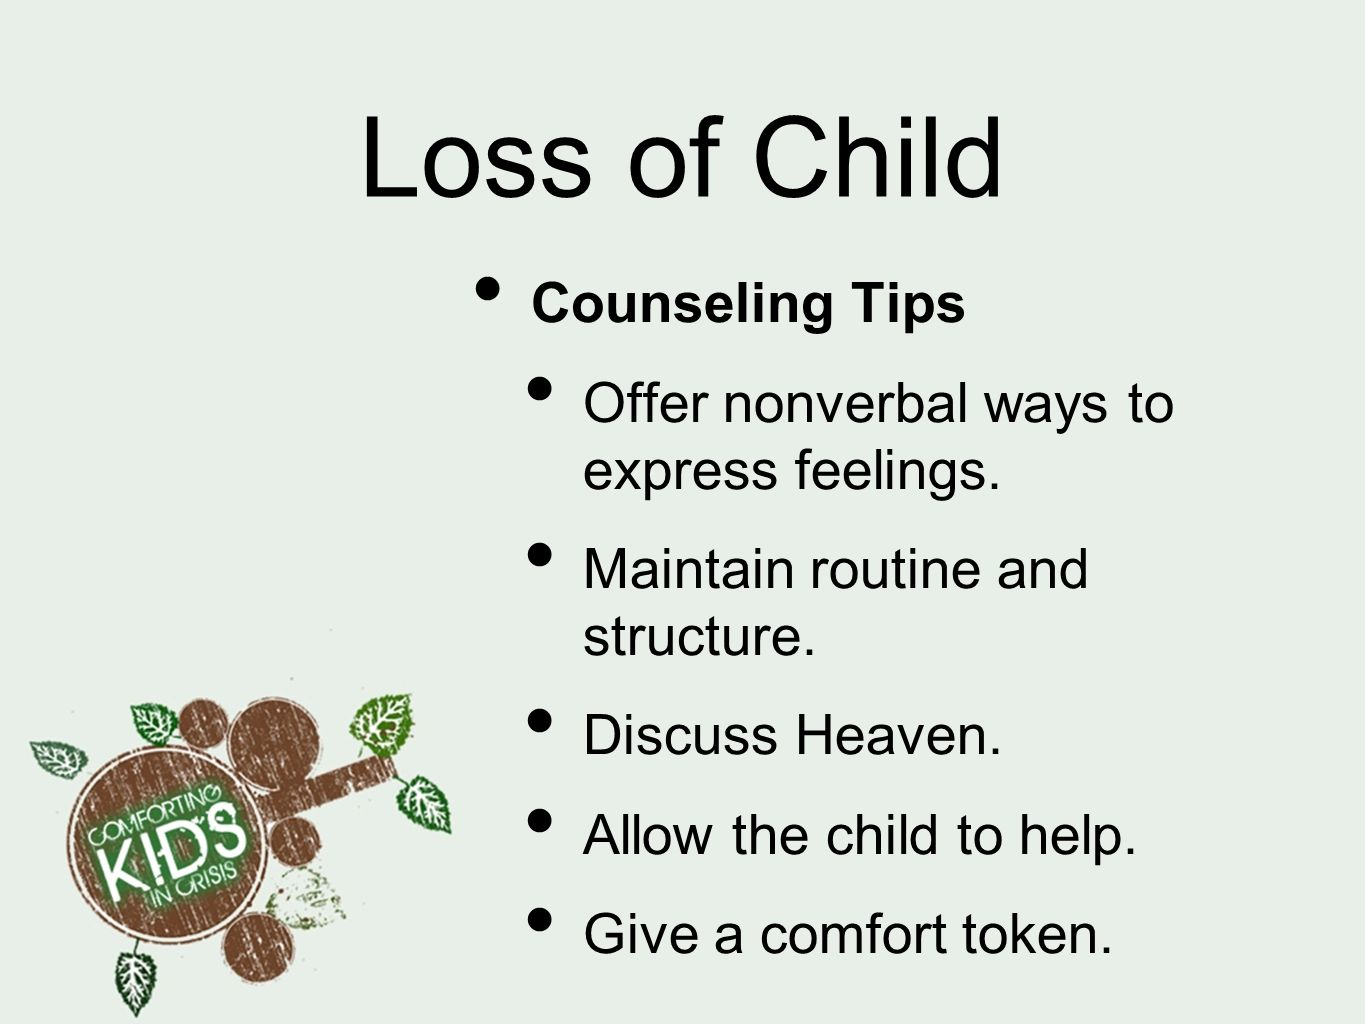 Loss of Child Counseling Tips